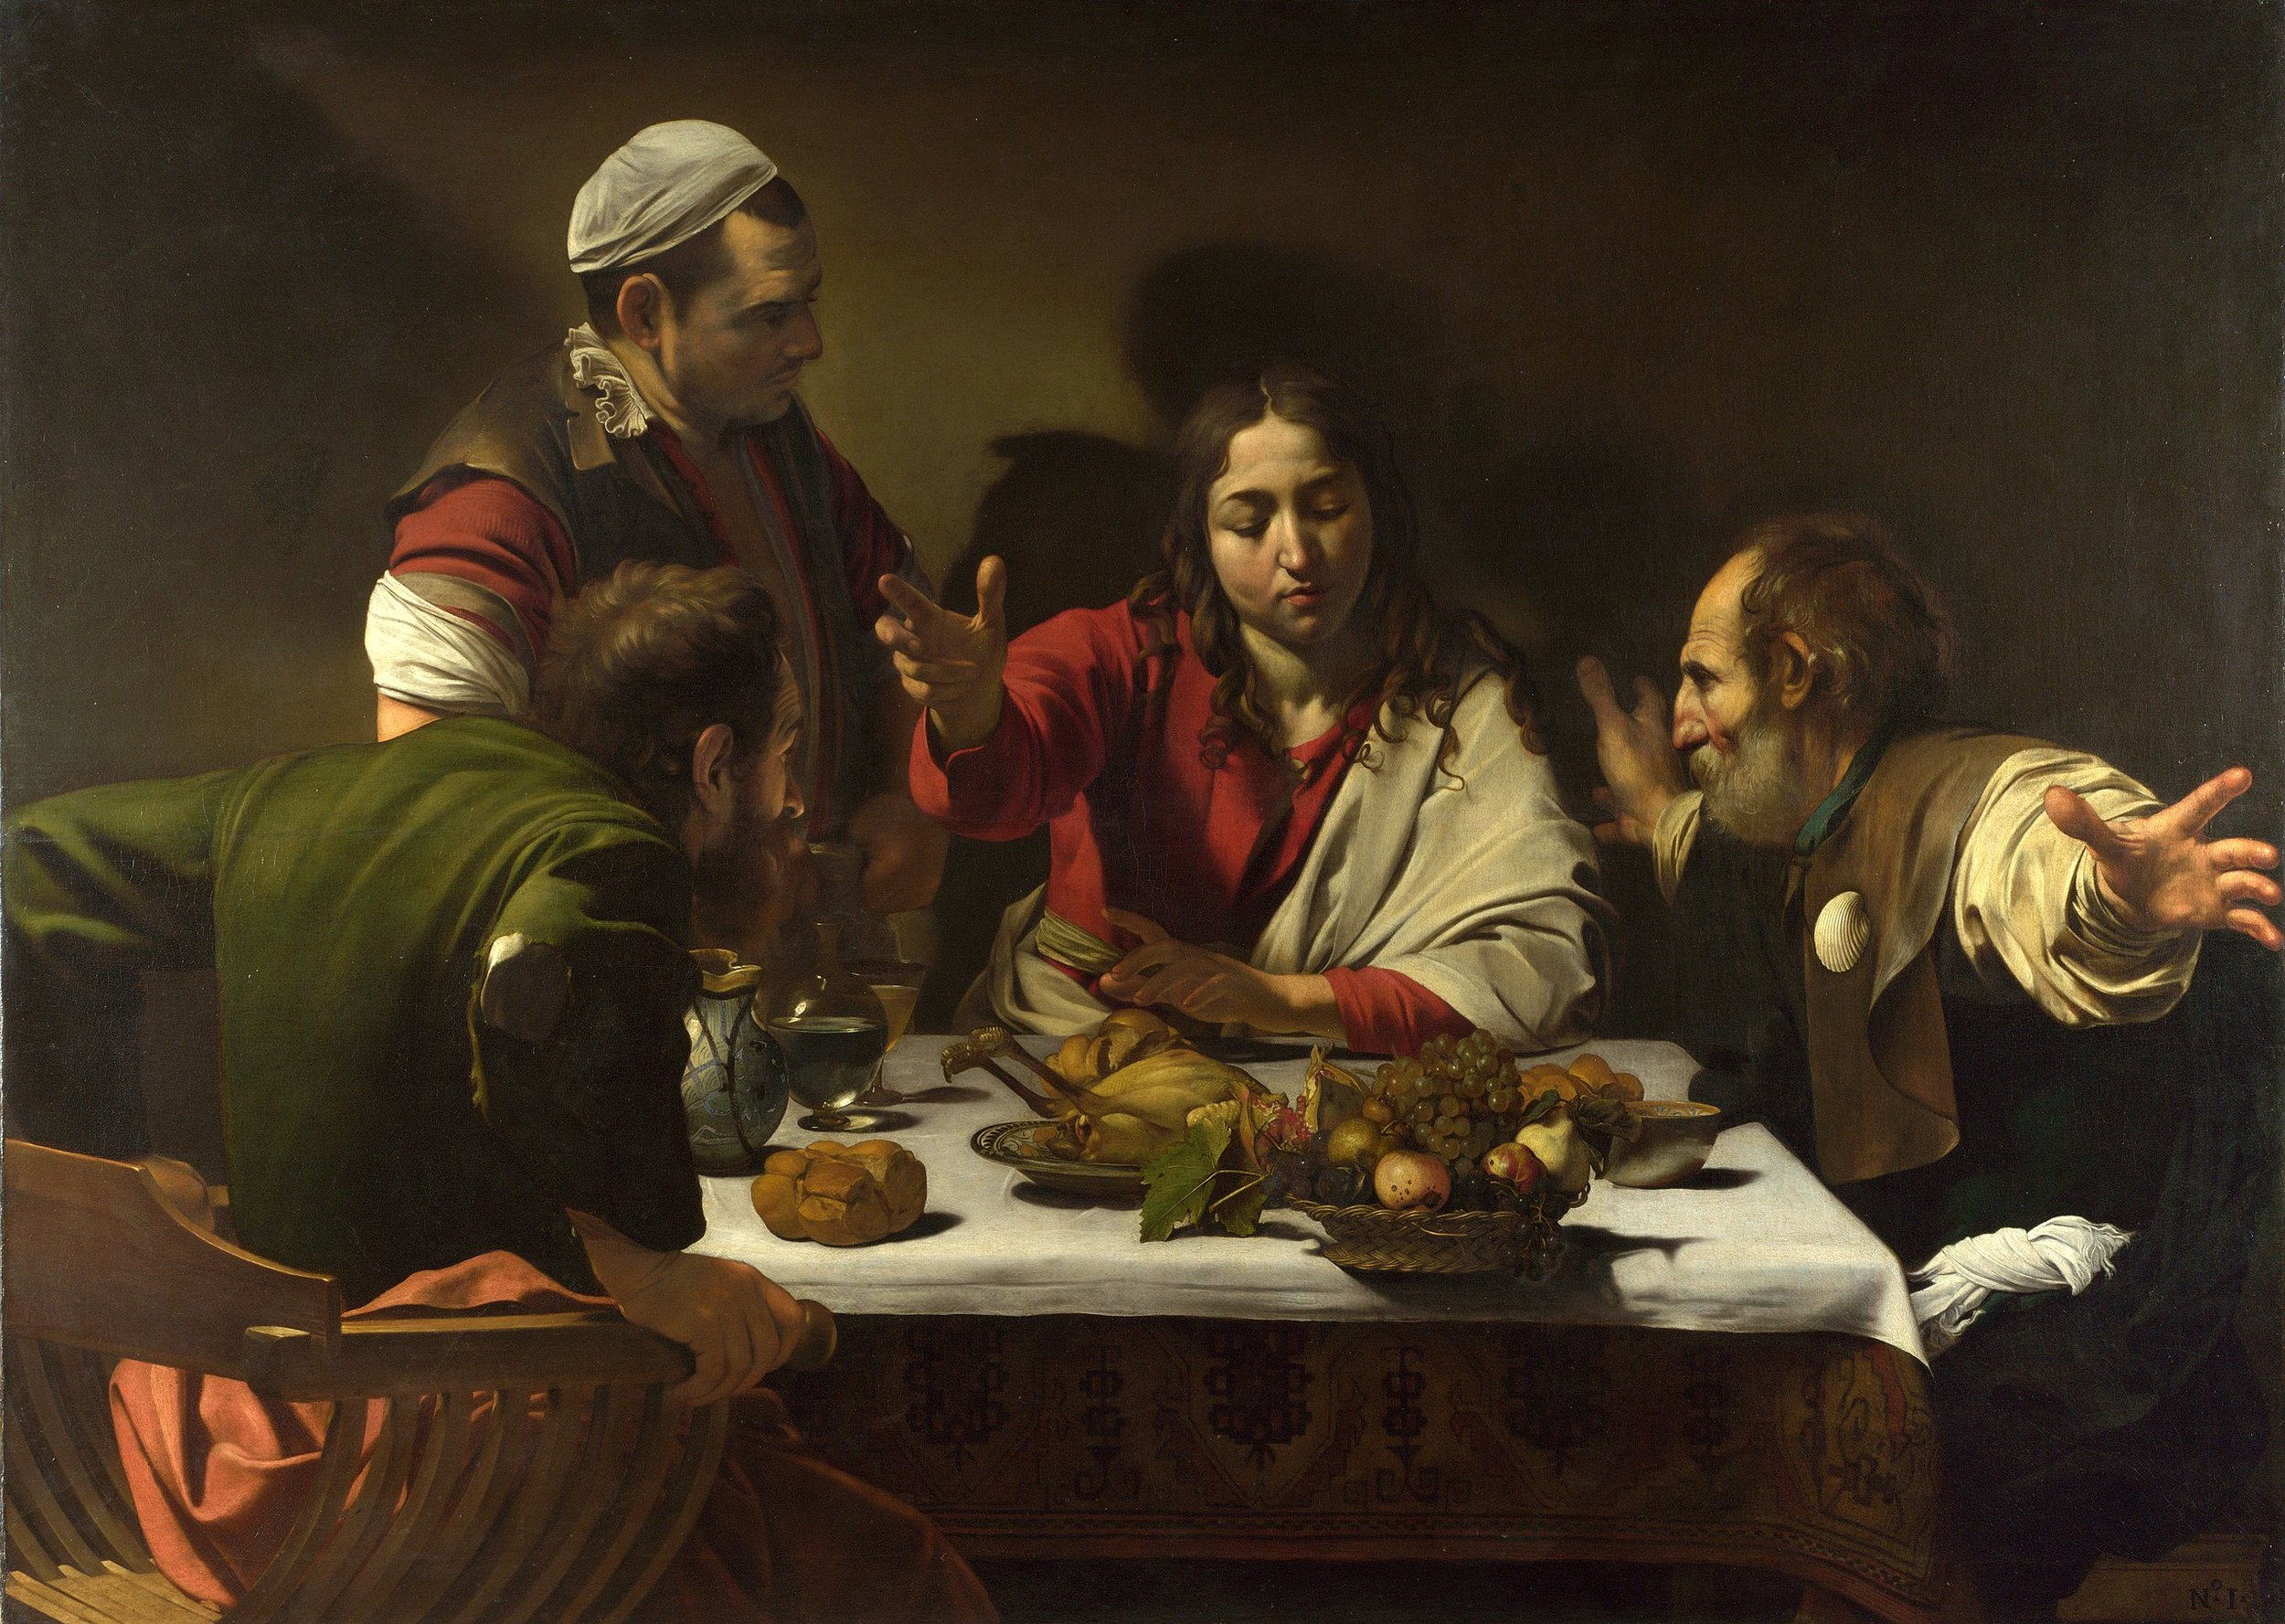 'The Supper at Emmaus' by Michelangelo Merisi da Caravaggio (National Gallery, London)